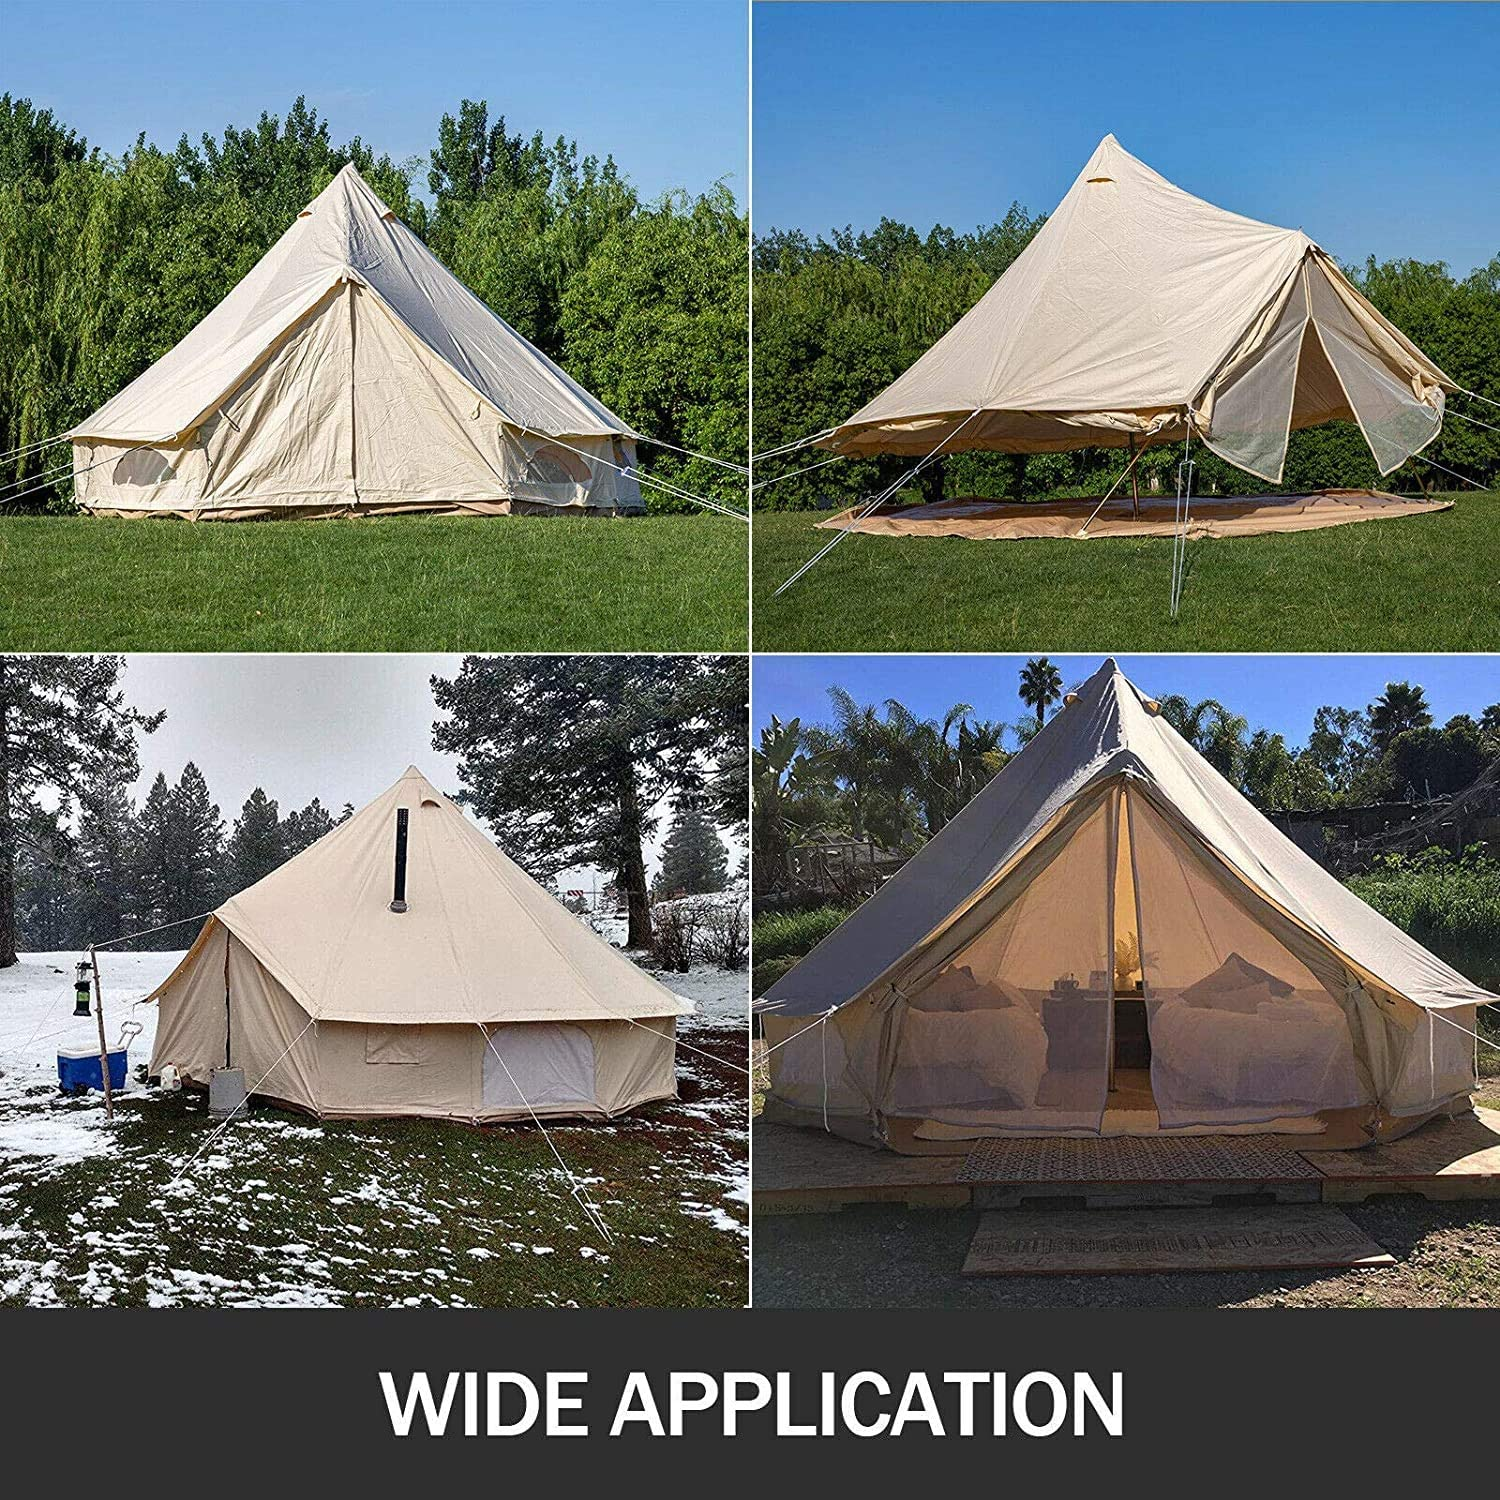 DNLM Bell Tent Canvas Tent with Stove Hole Cotton Canvas Tents Yurt Tent for Camping 4-Season Waterproof Bell Tent for Family Camping Outdoor Hunting,A-400cm